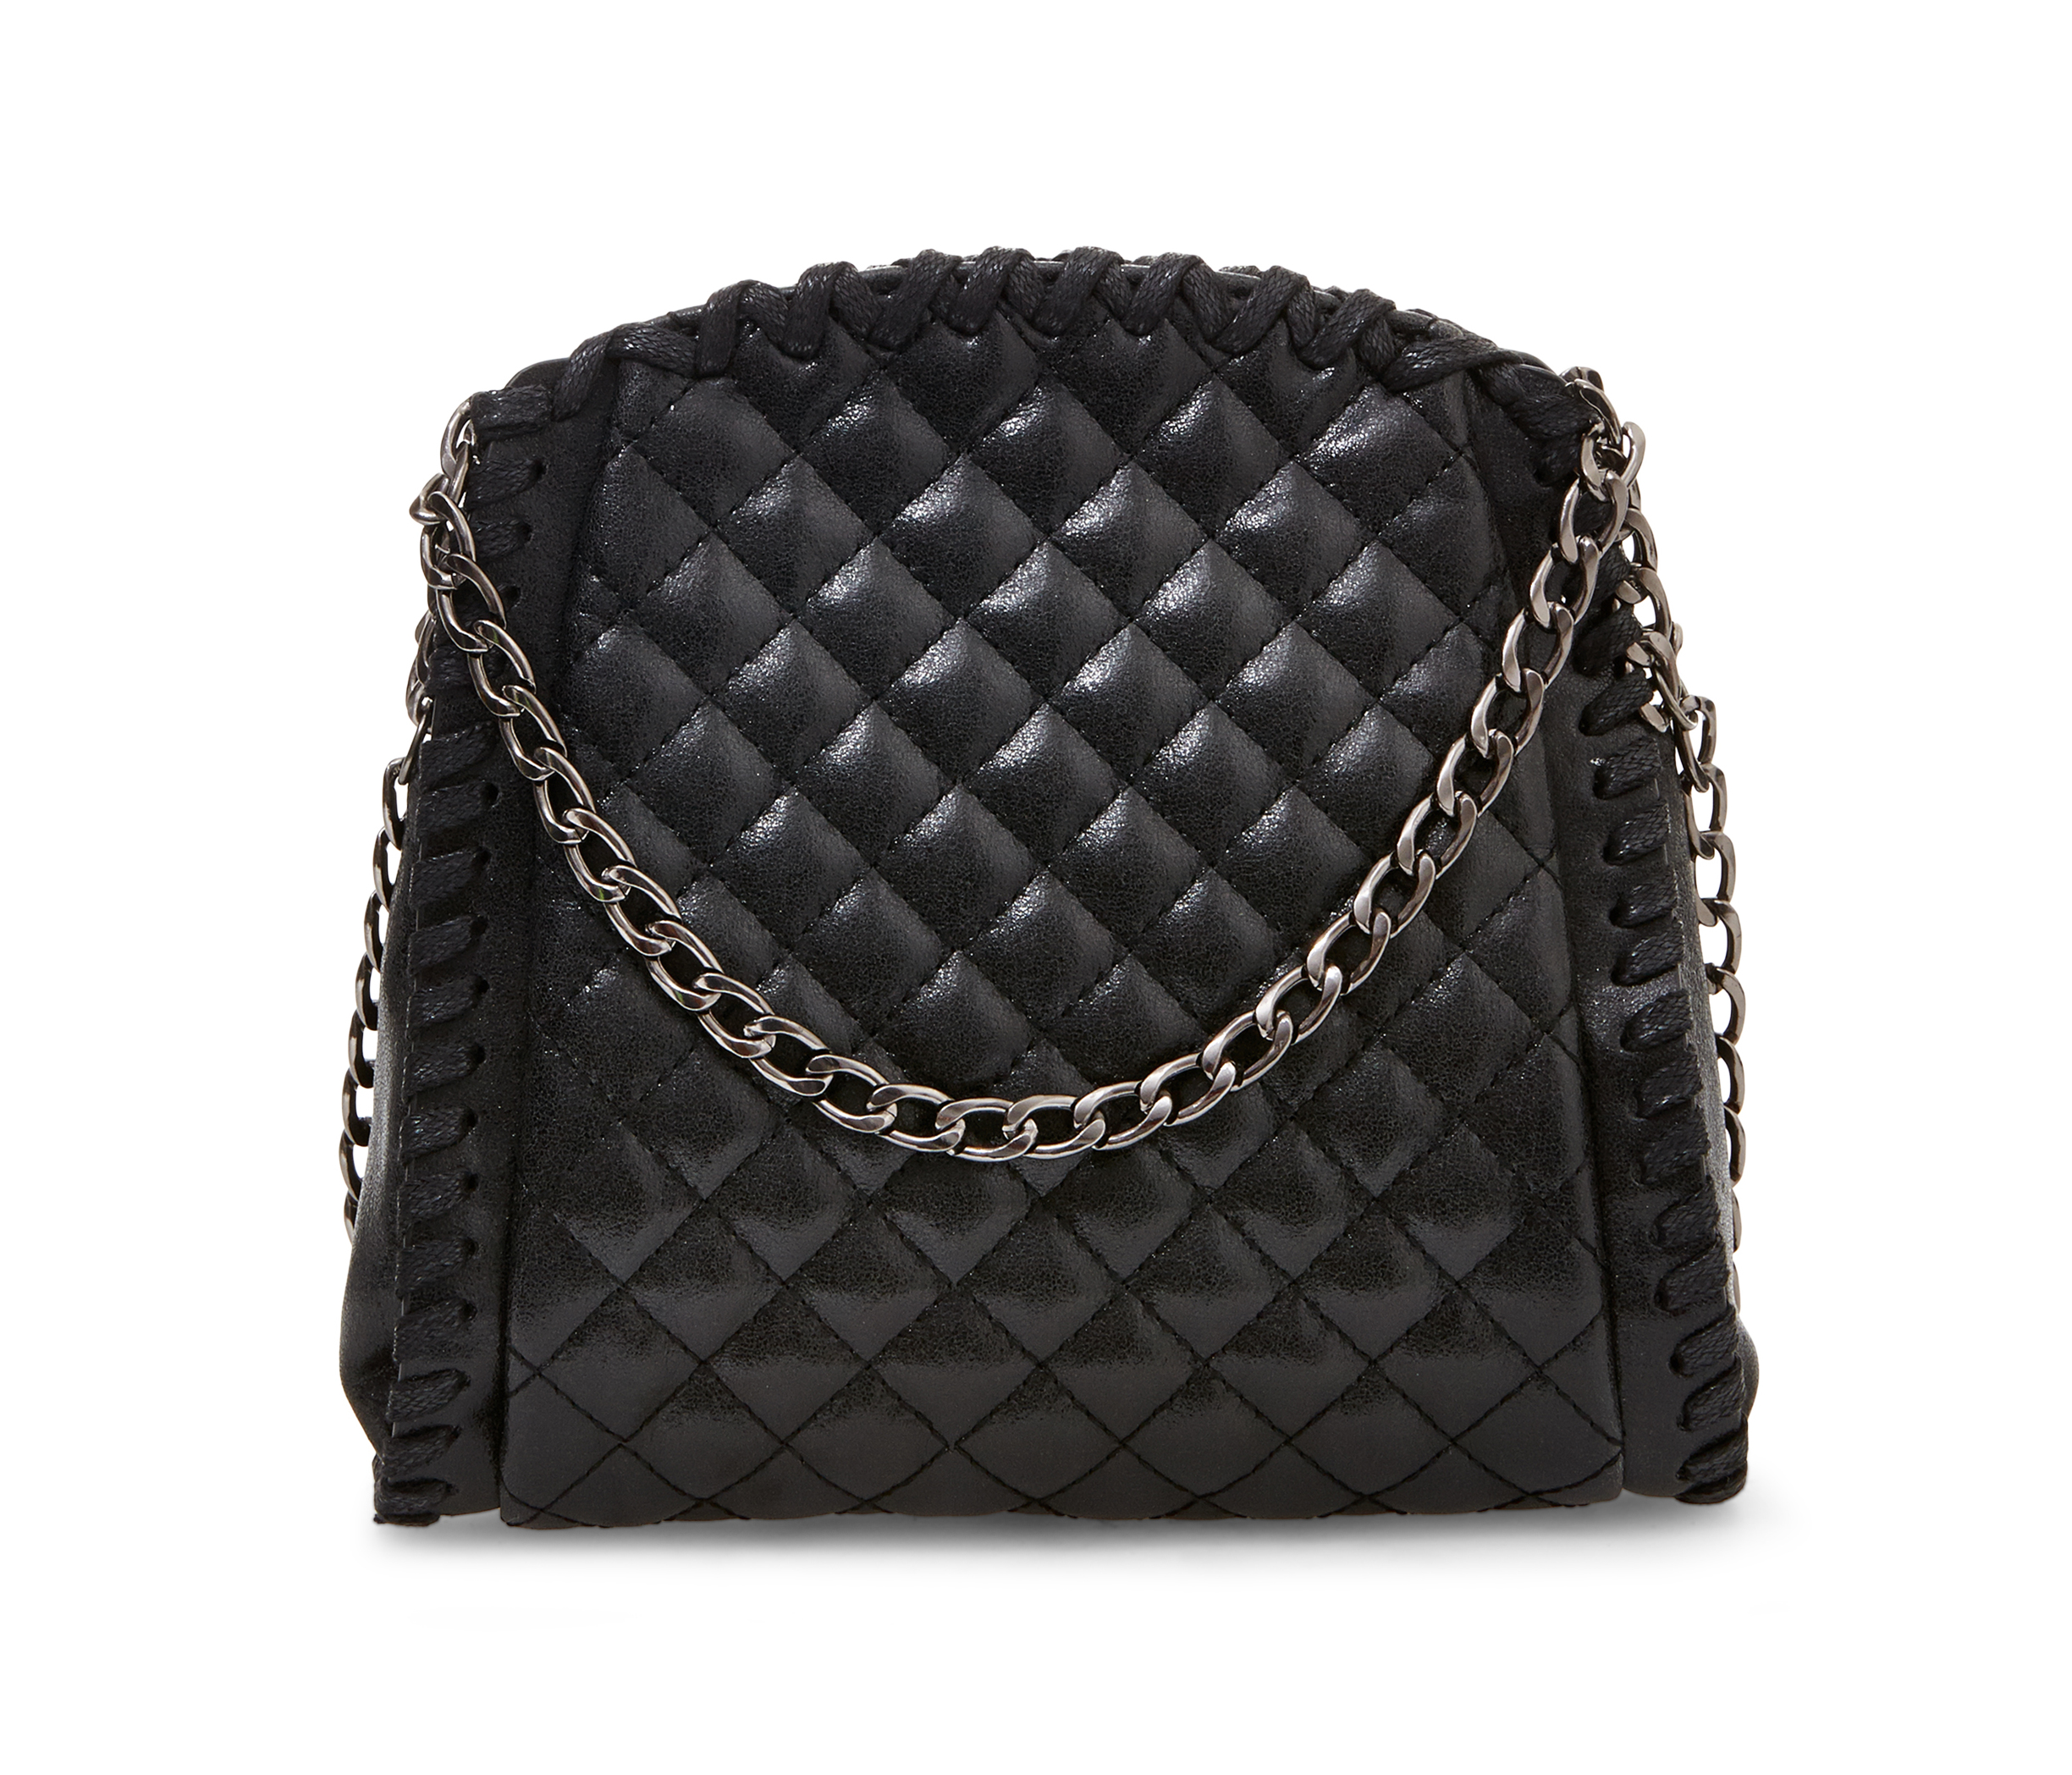 Moto Style: The Quilted Bag